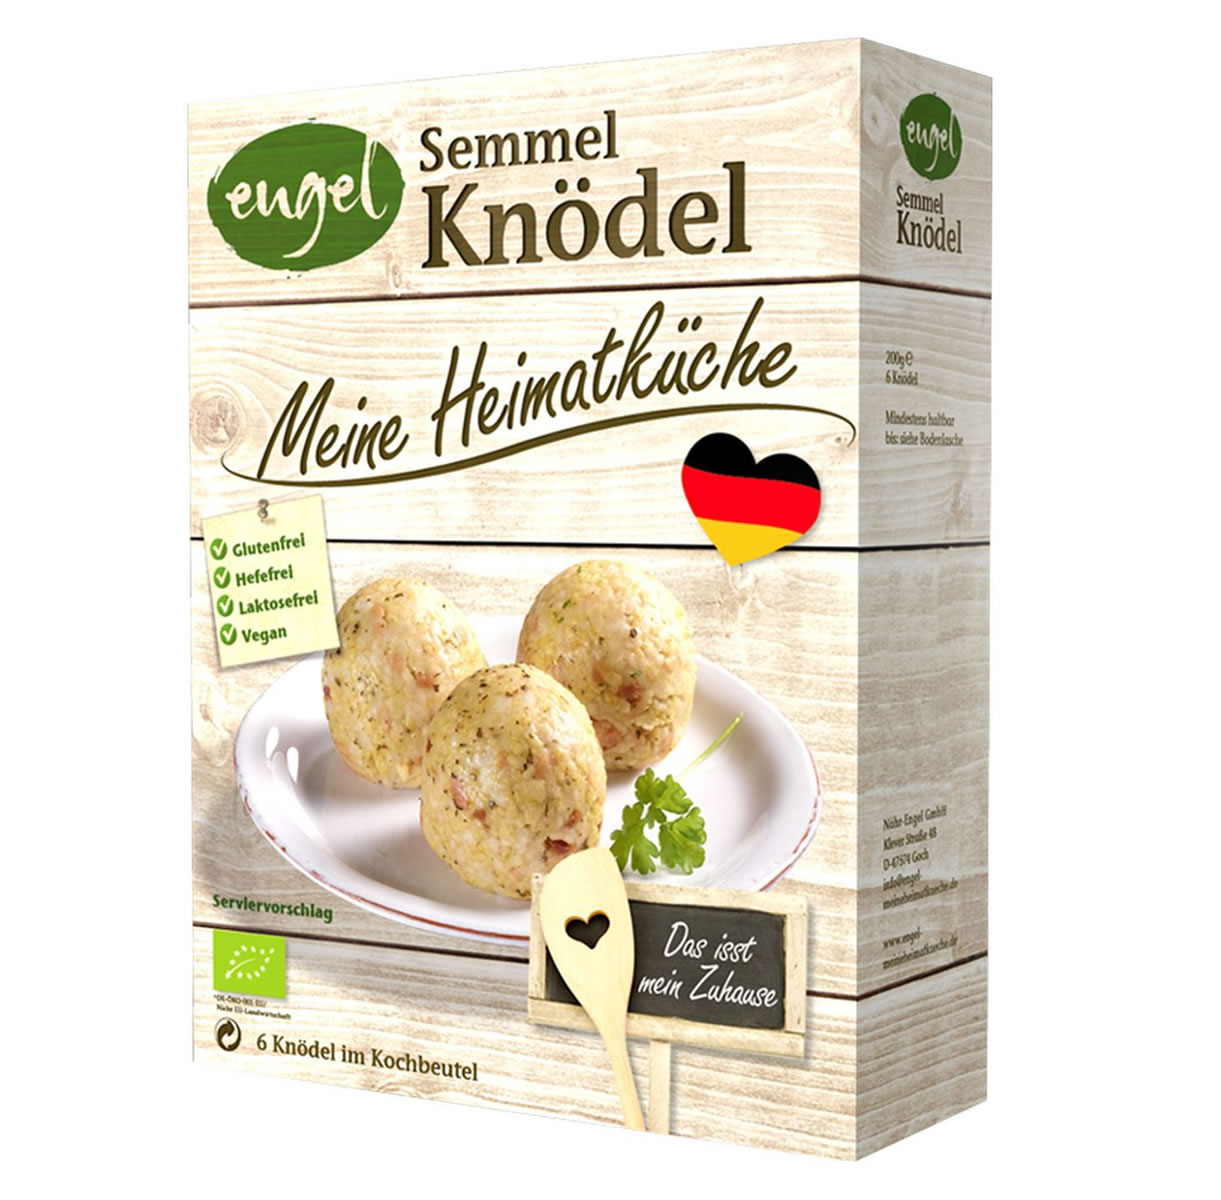 Bread dumplings Κnodel, 200g